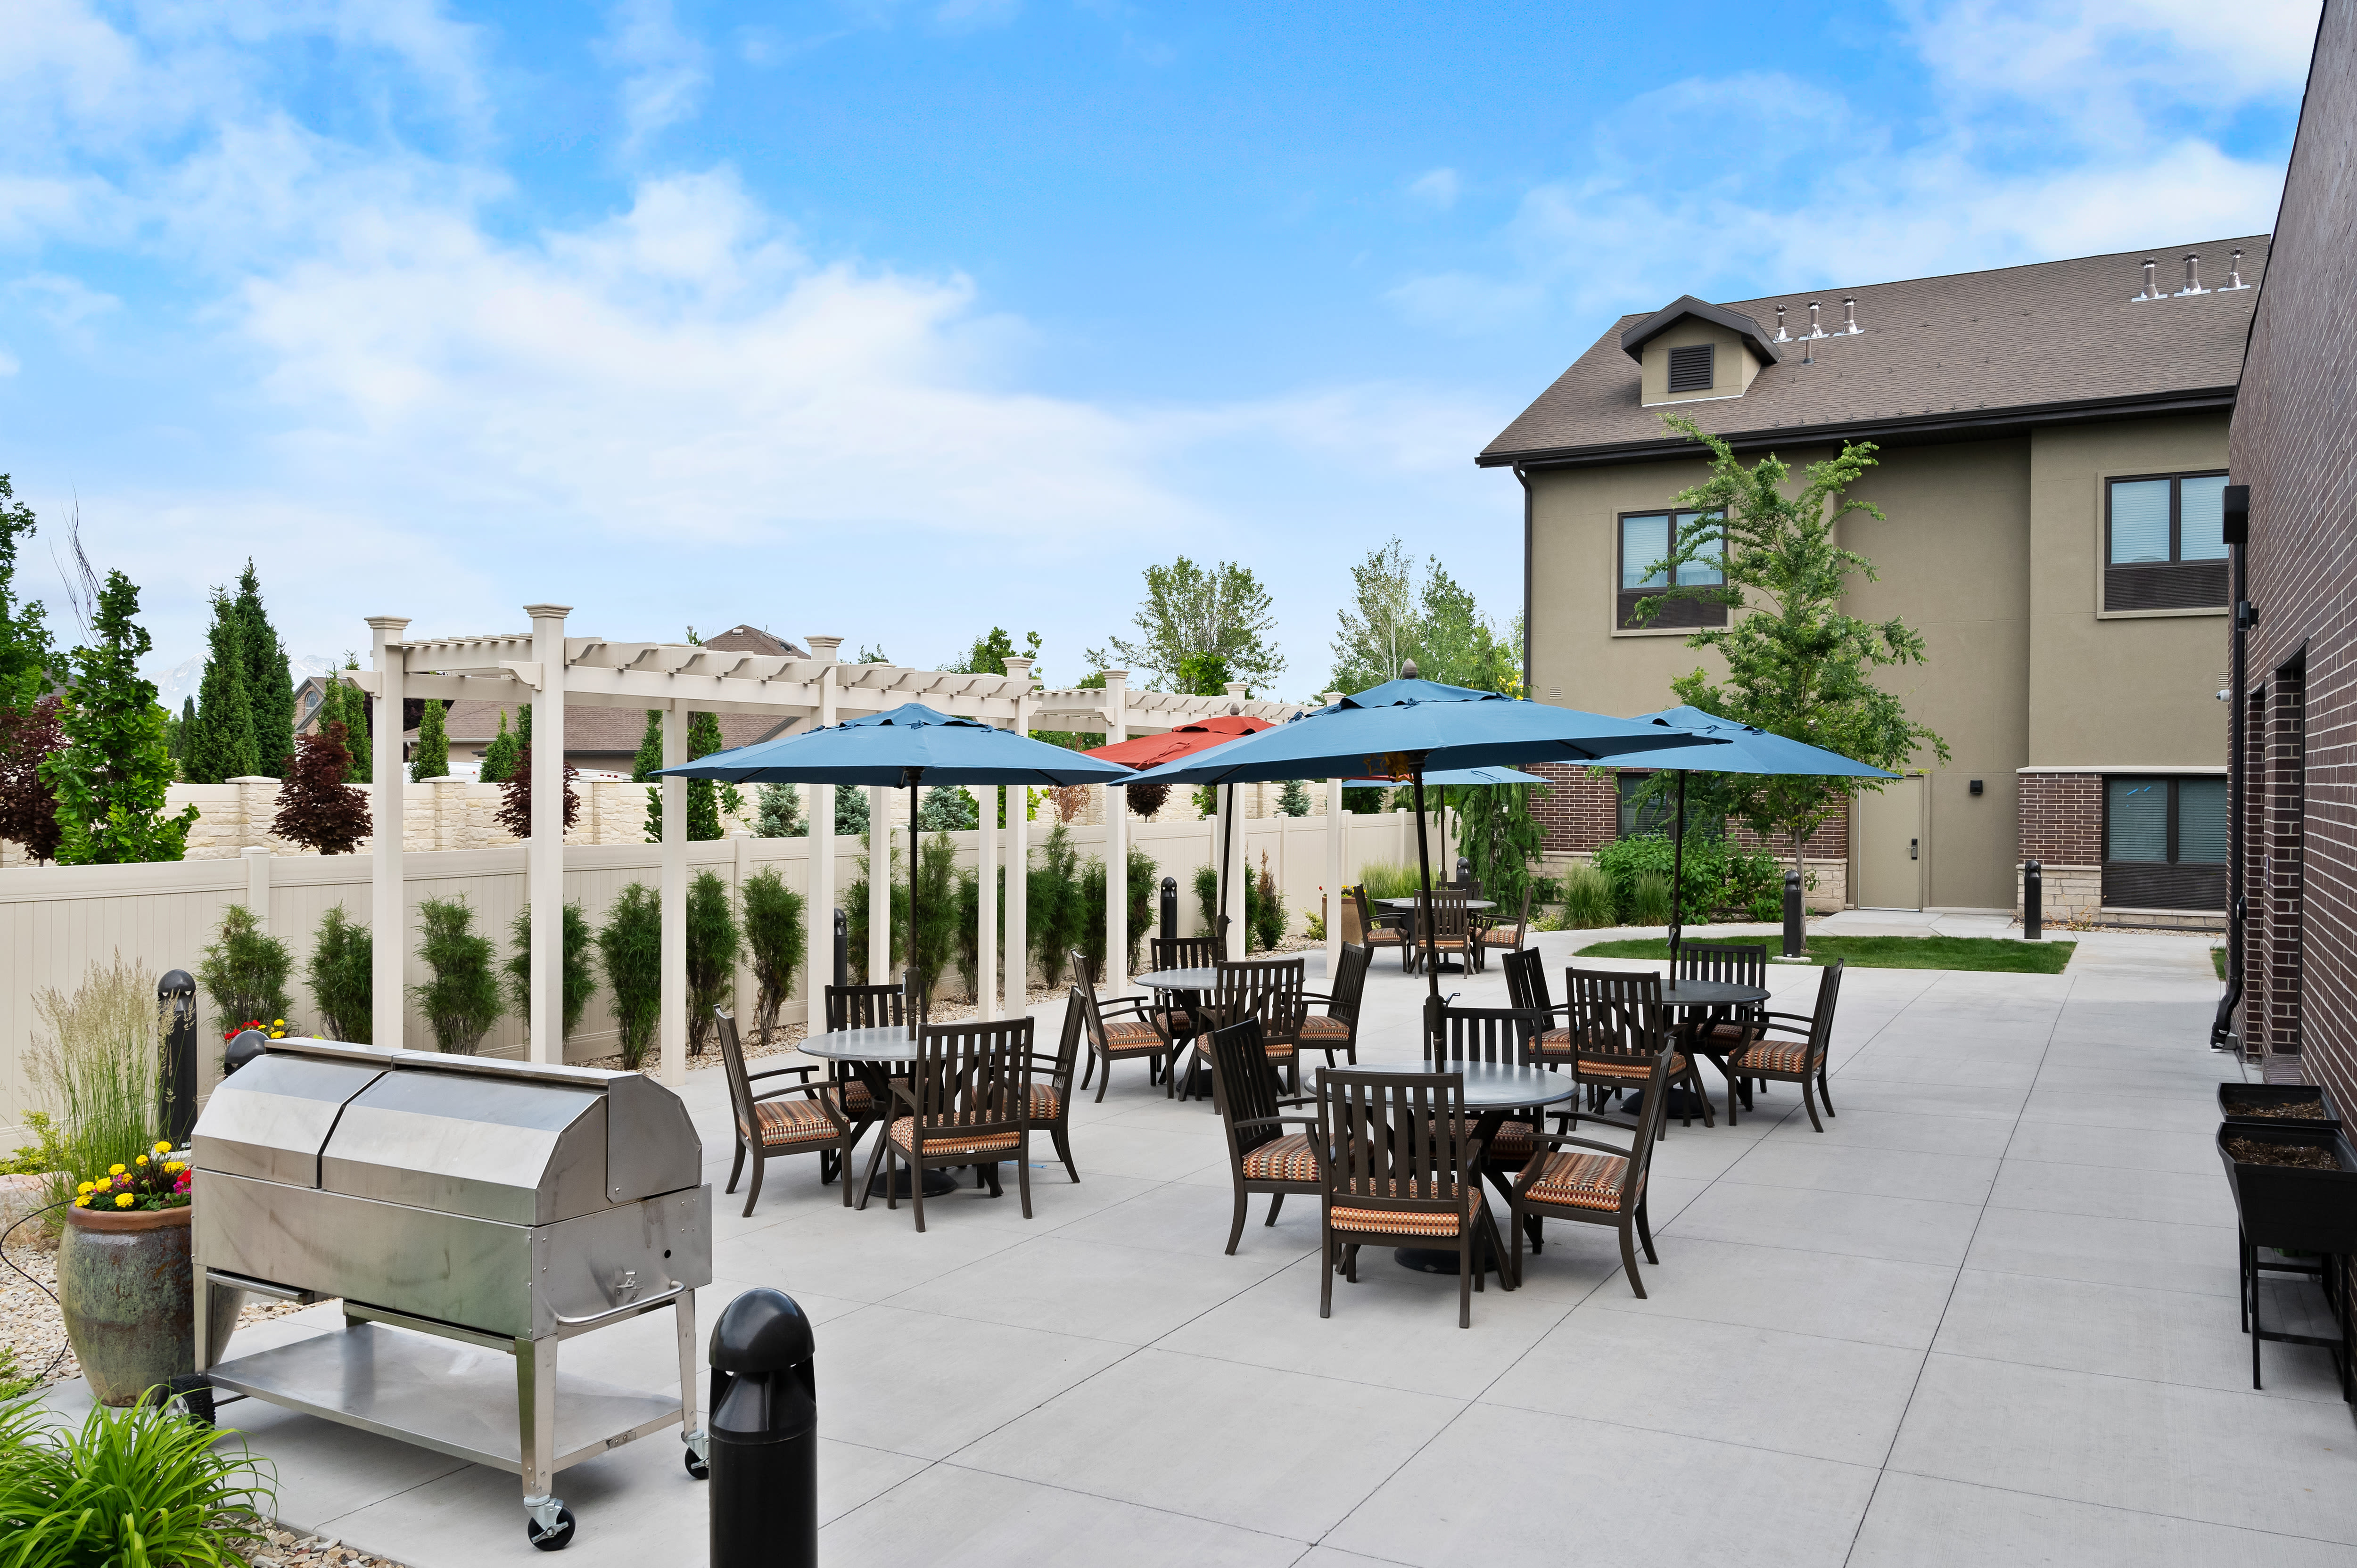 exterior patio seating with BBQ